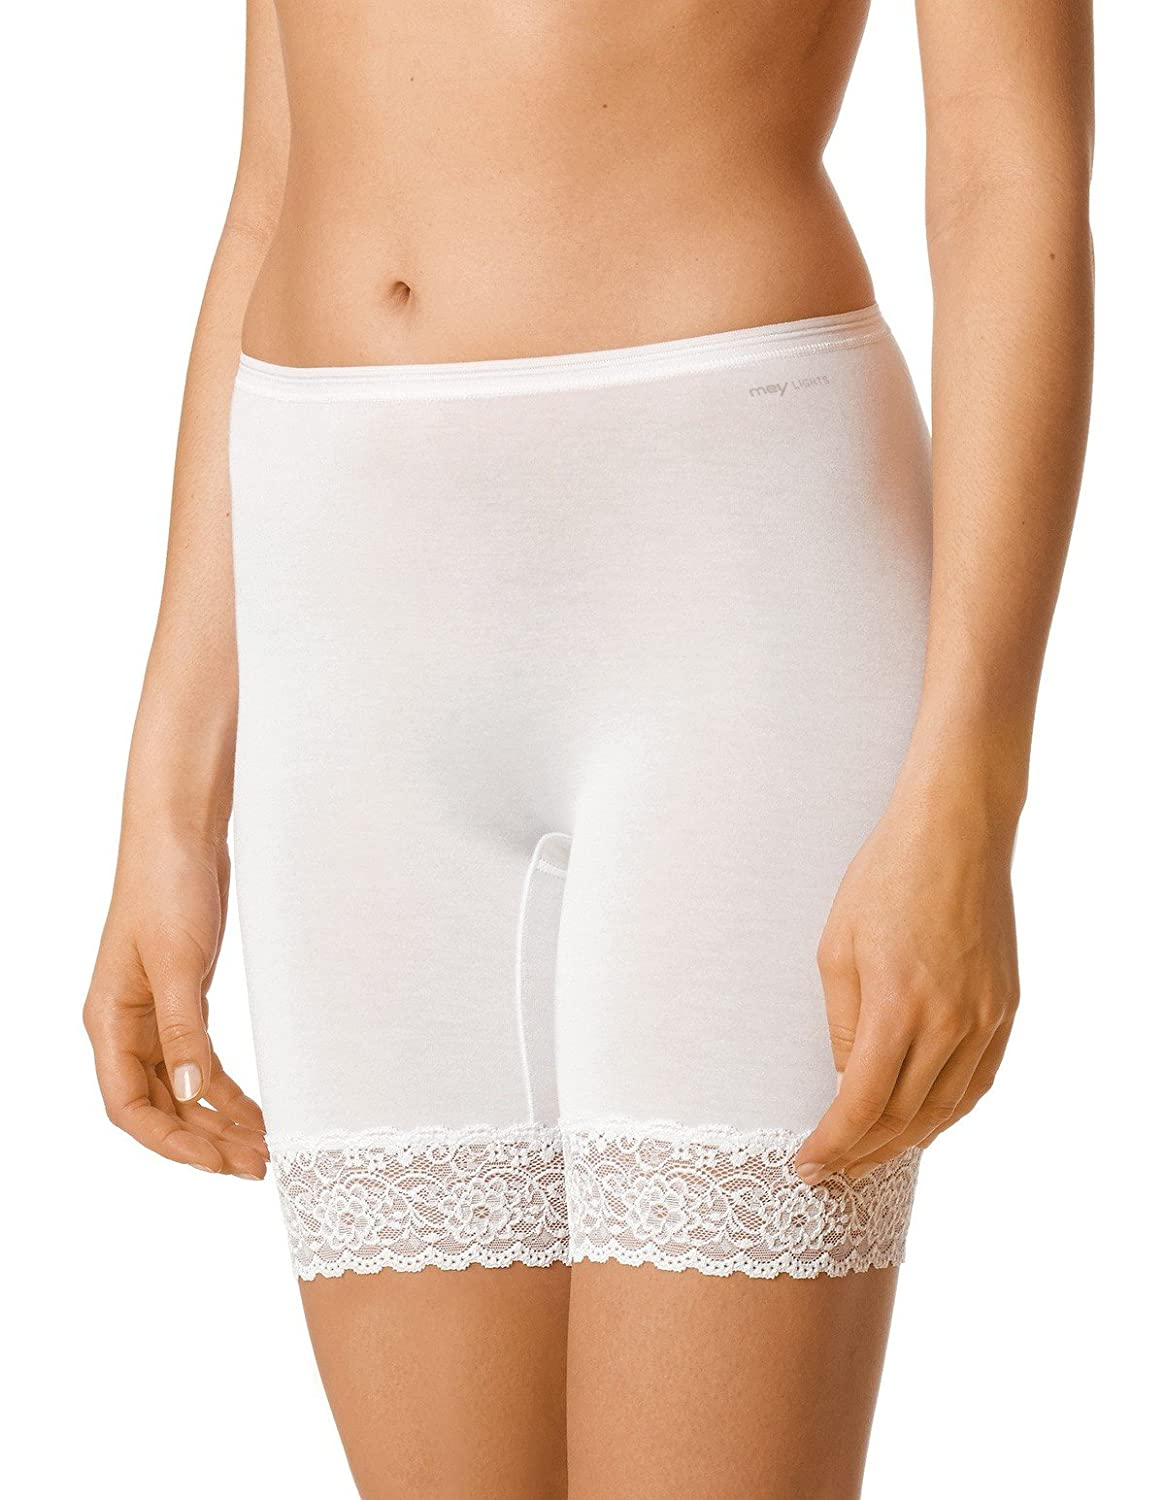 Mey 88210-1 Women's Lights White Solid Colour French Knickers Mey Women